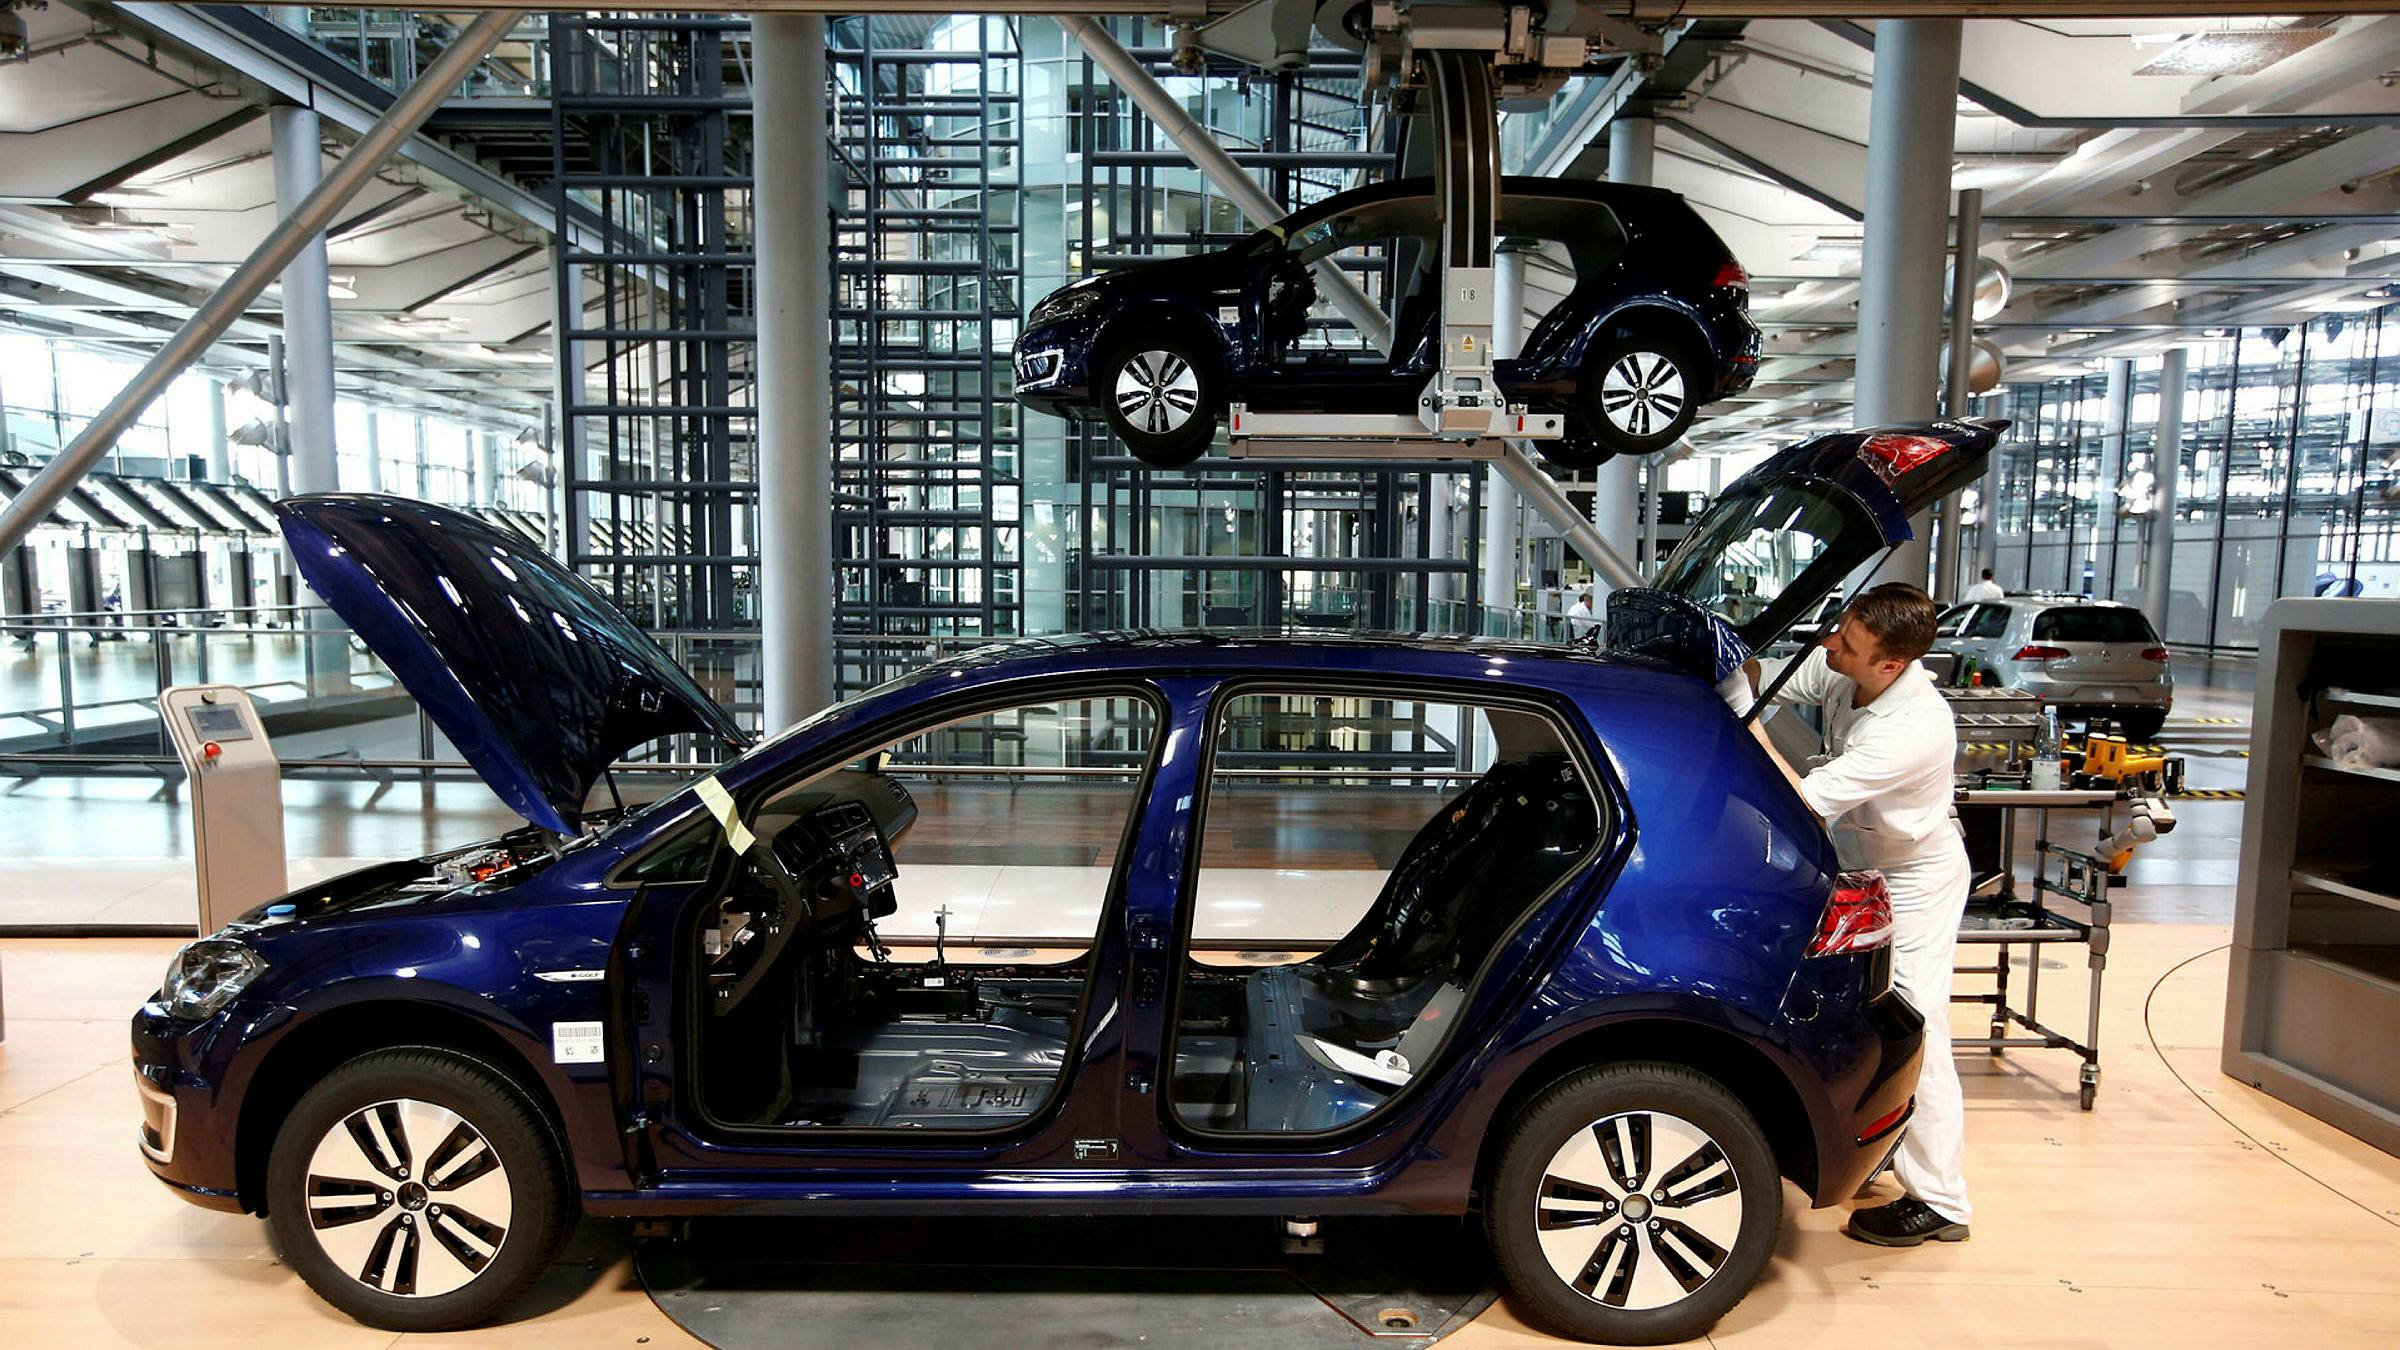 Are electric vehicles more damaging than diesel ft alphaville